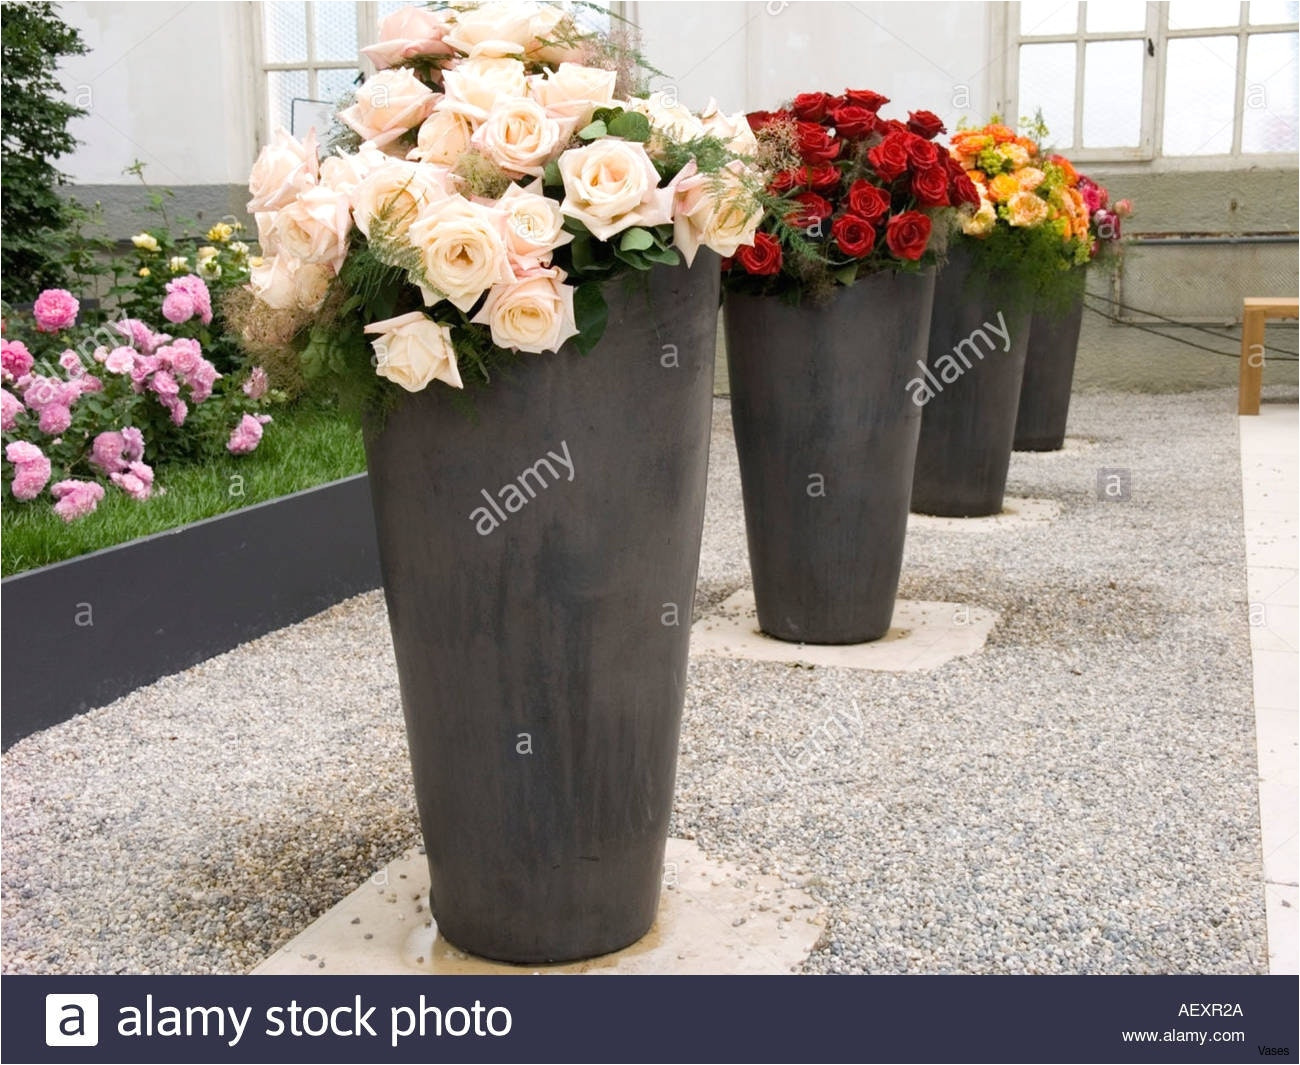 cheap wedding vases of used wedding decorations for sale party articles with flower vases intended for used wedding decorations for sale party articles with flower vases for sale tag big vase l